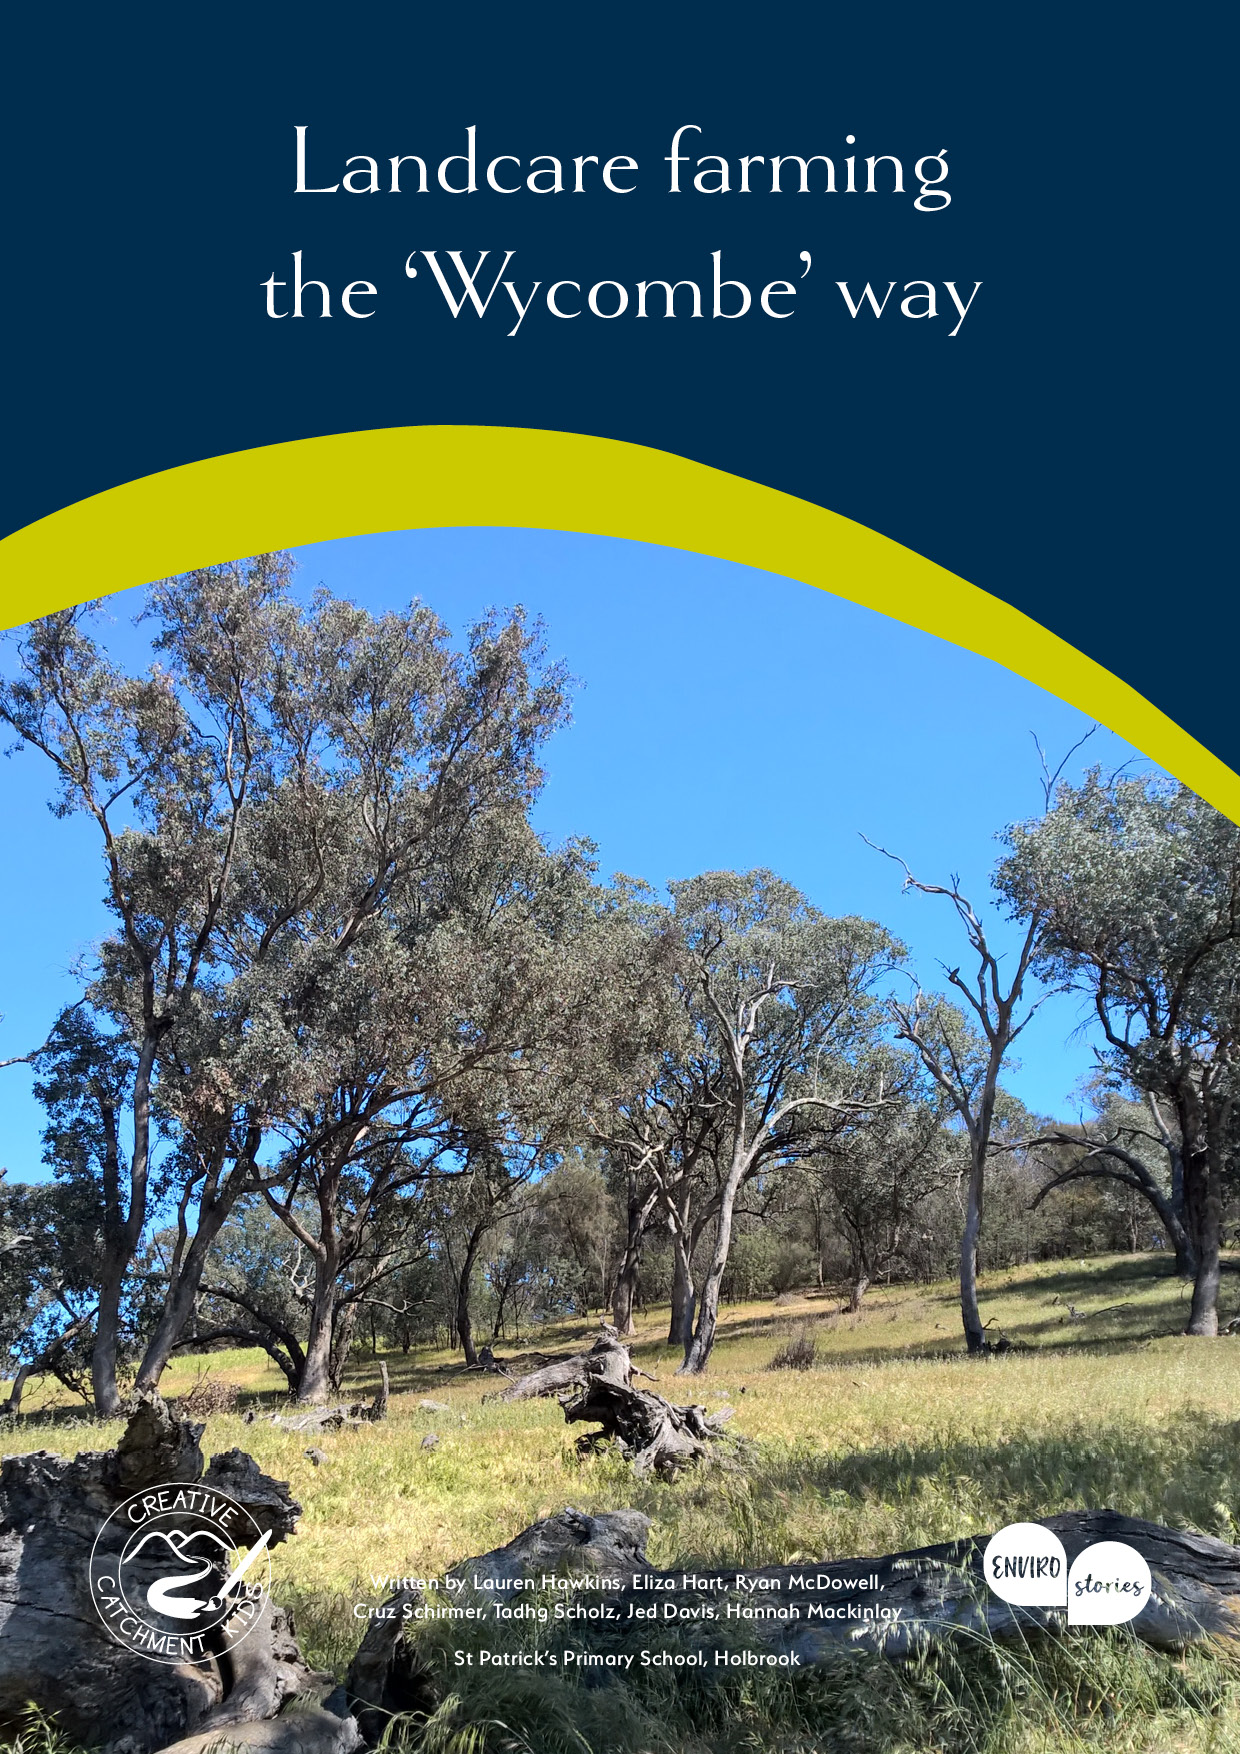 Landcare farming the 'Wycombe' way